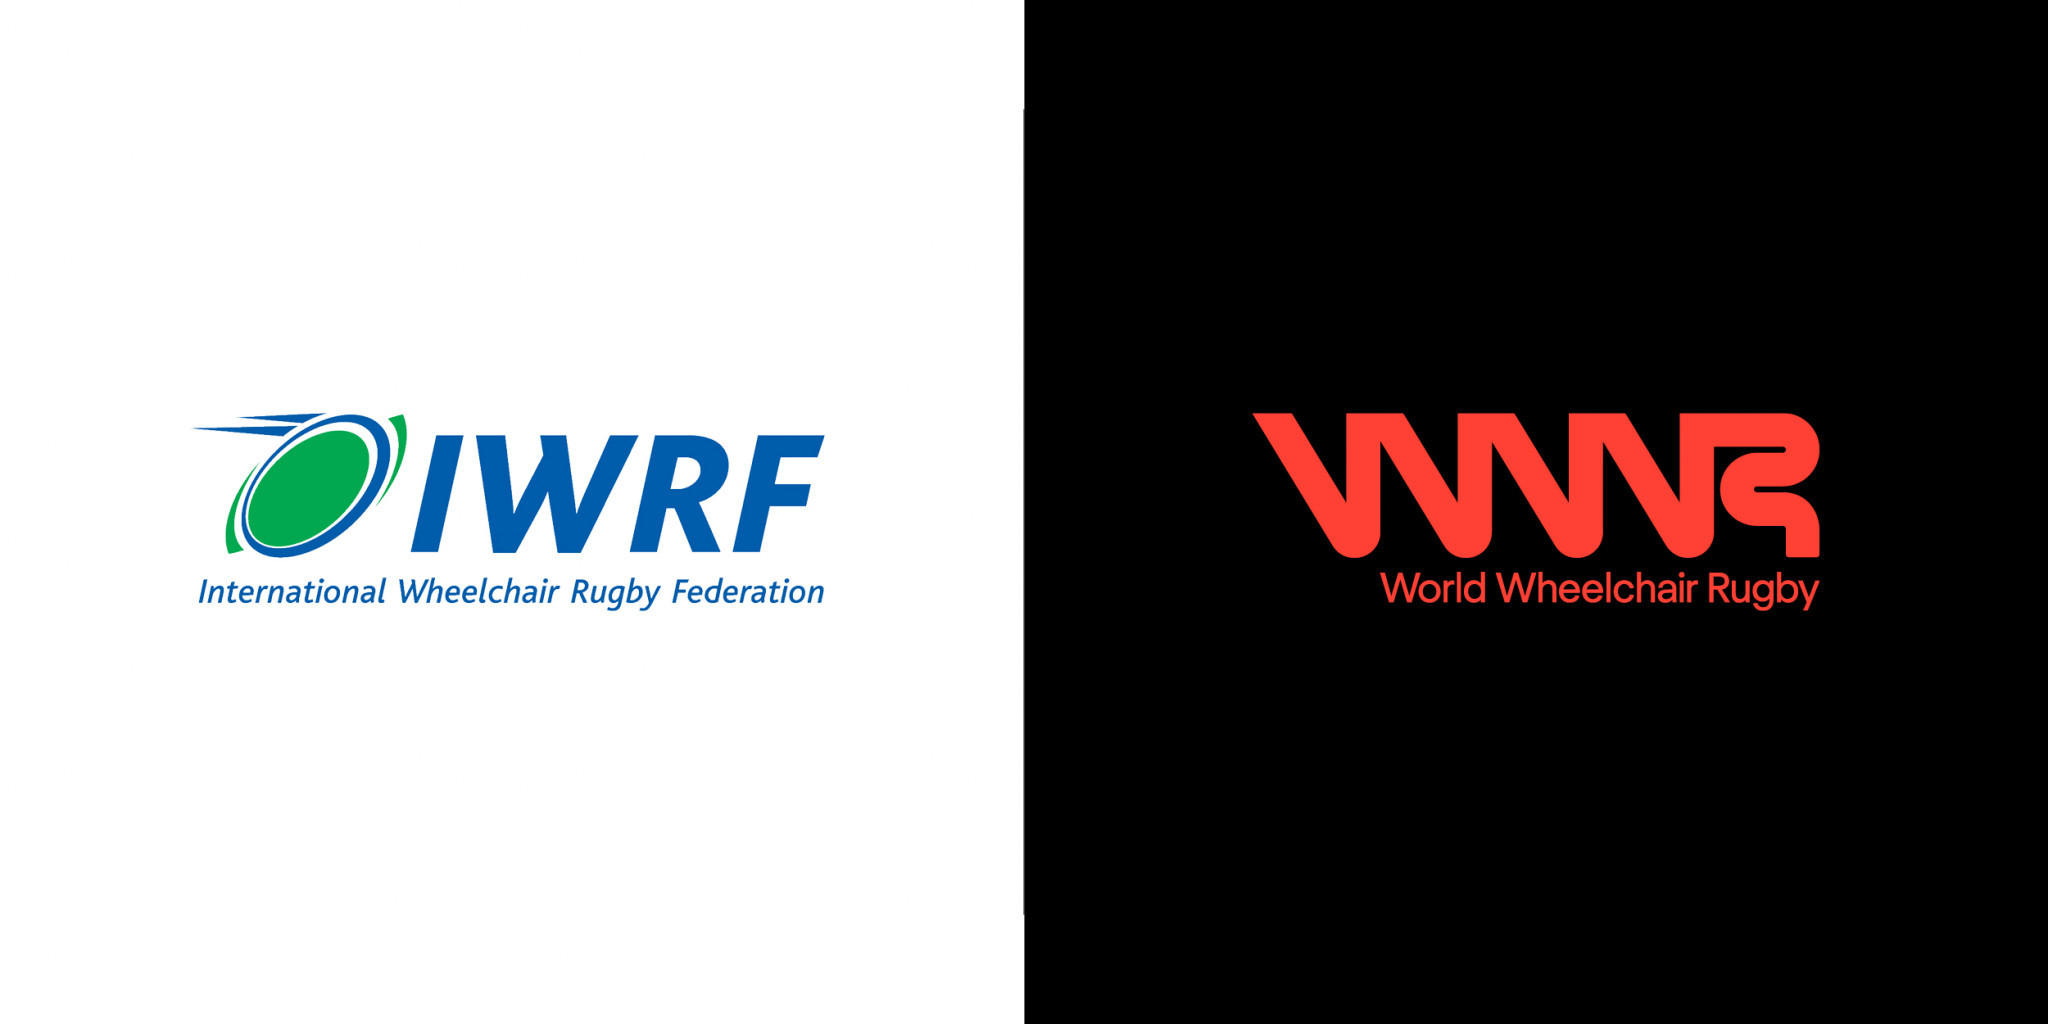 IWRF changes names to World Wheelchair Rugby to celebrate 45 years of sport